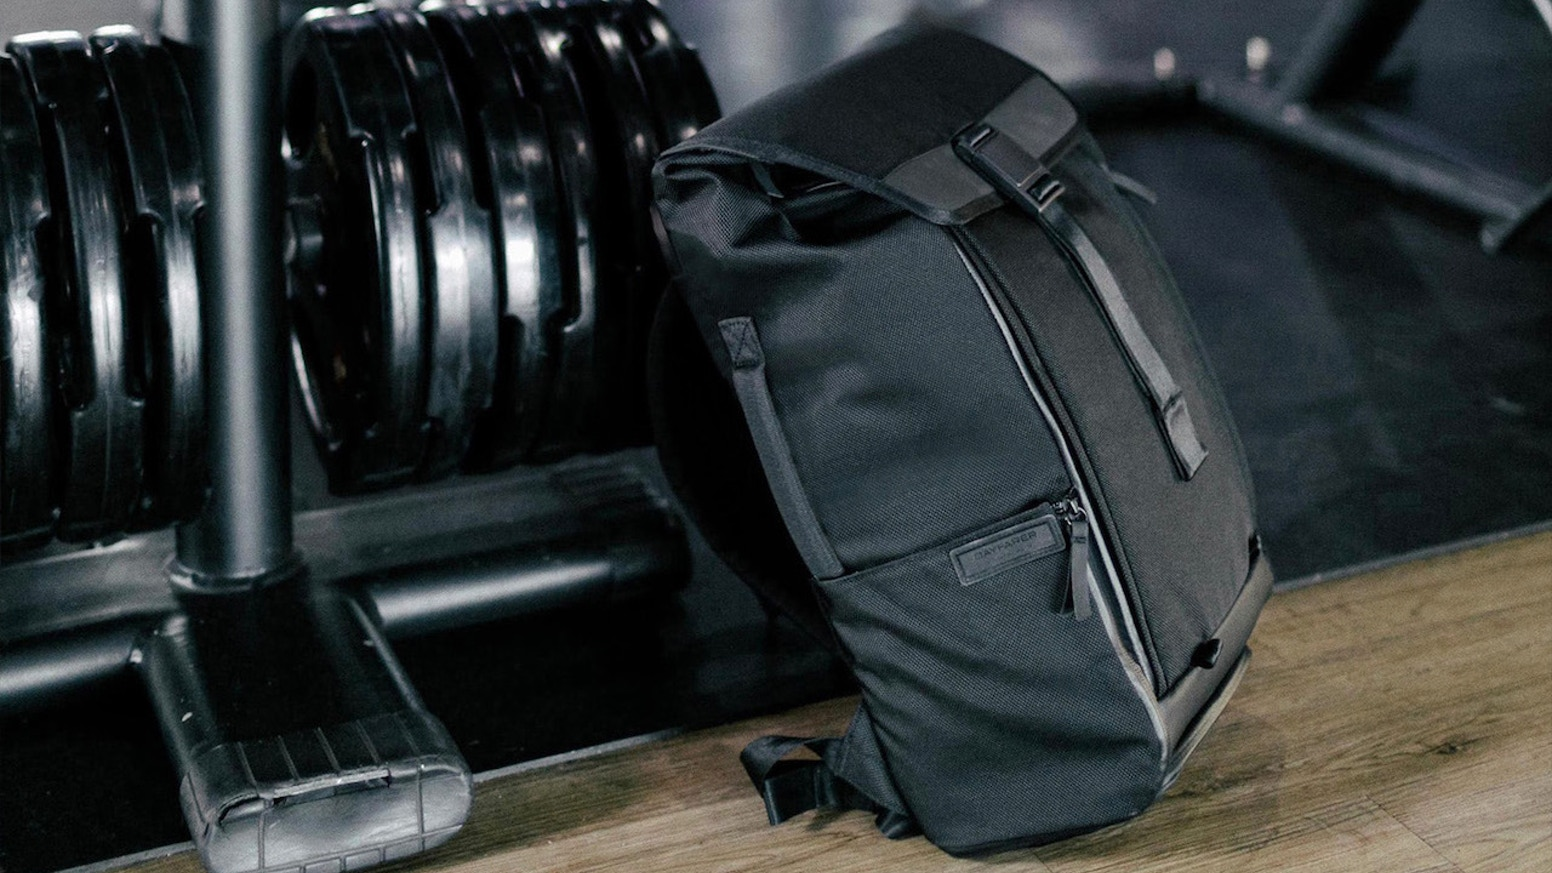 c4285d2f5dc0 A sleek and functional backpack for everyday use